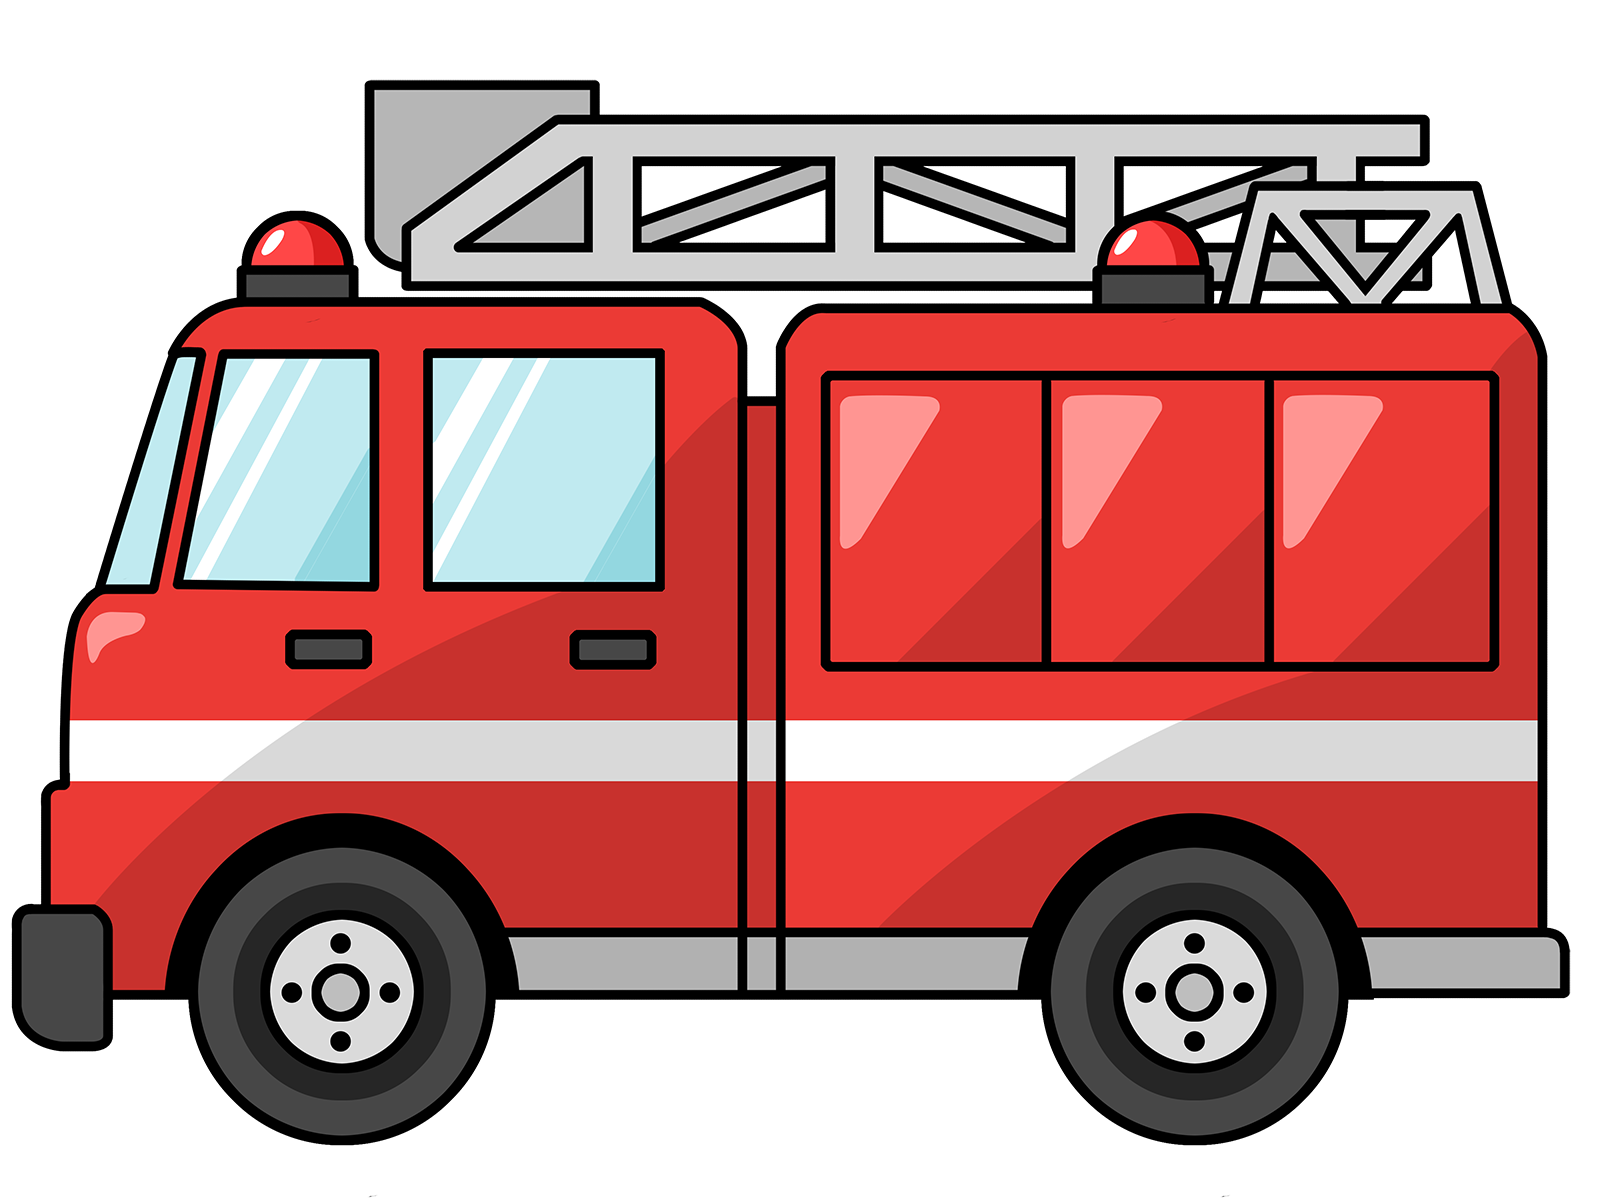 Fire Station Clipart - Cliparts.co